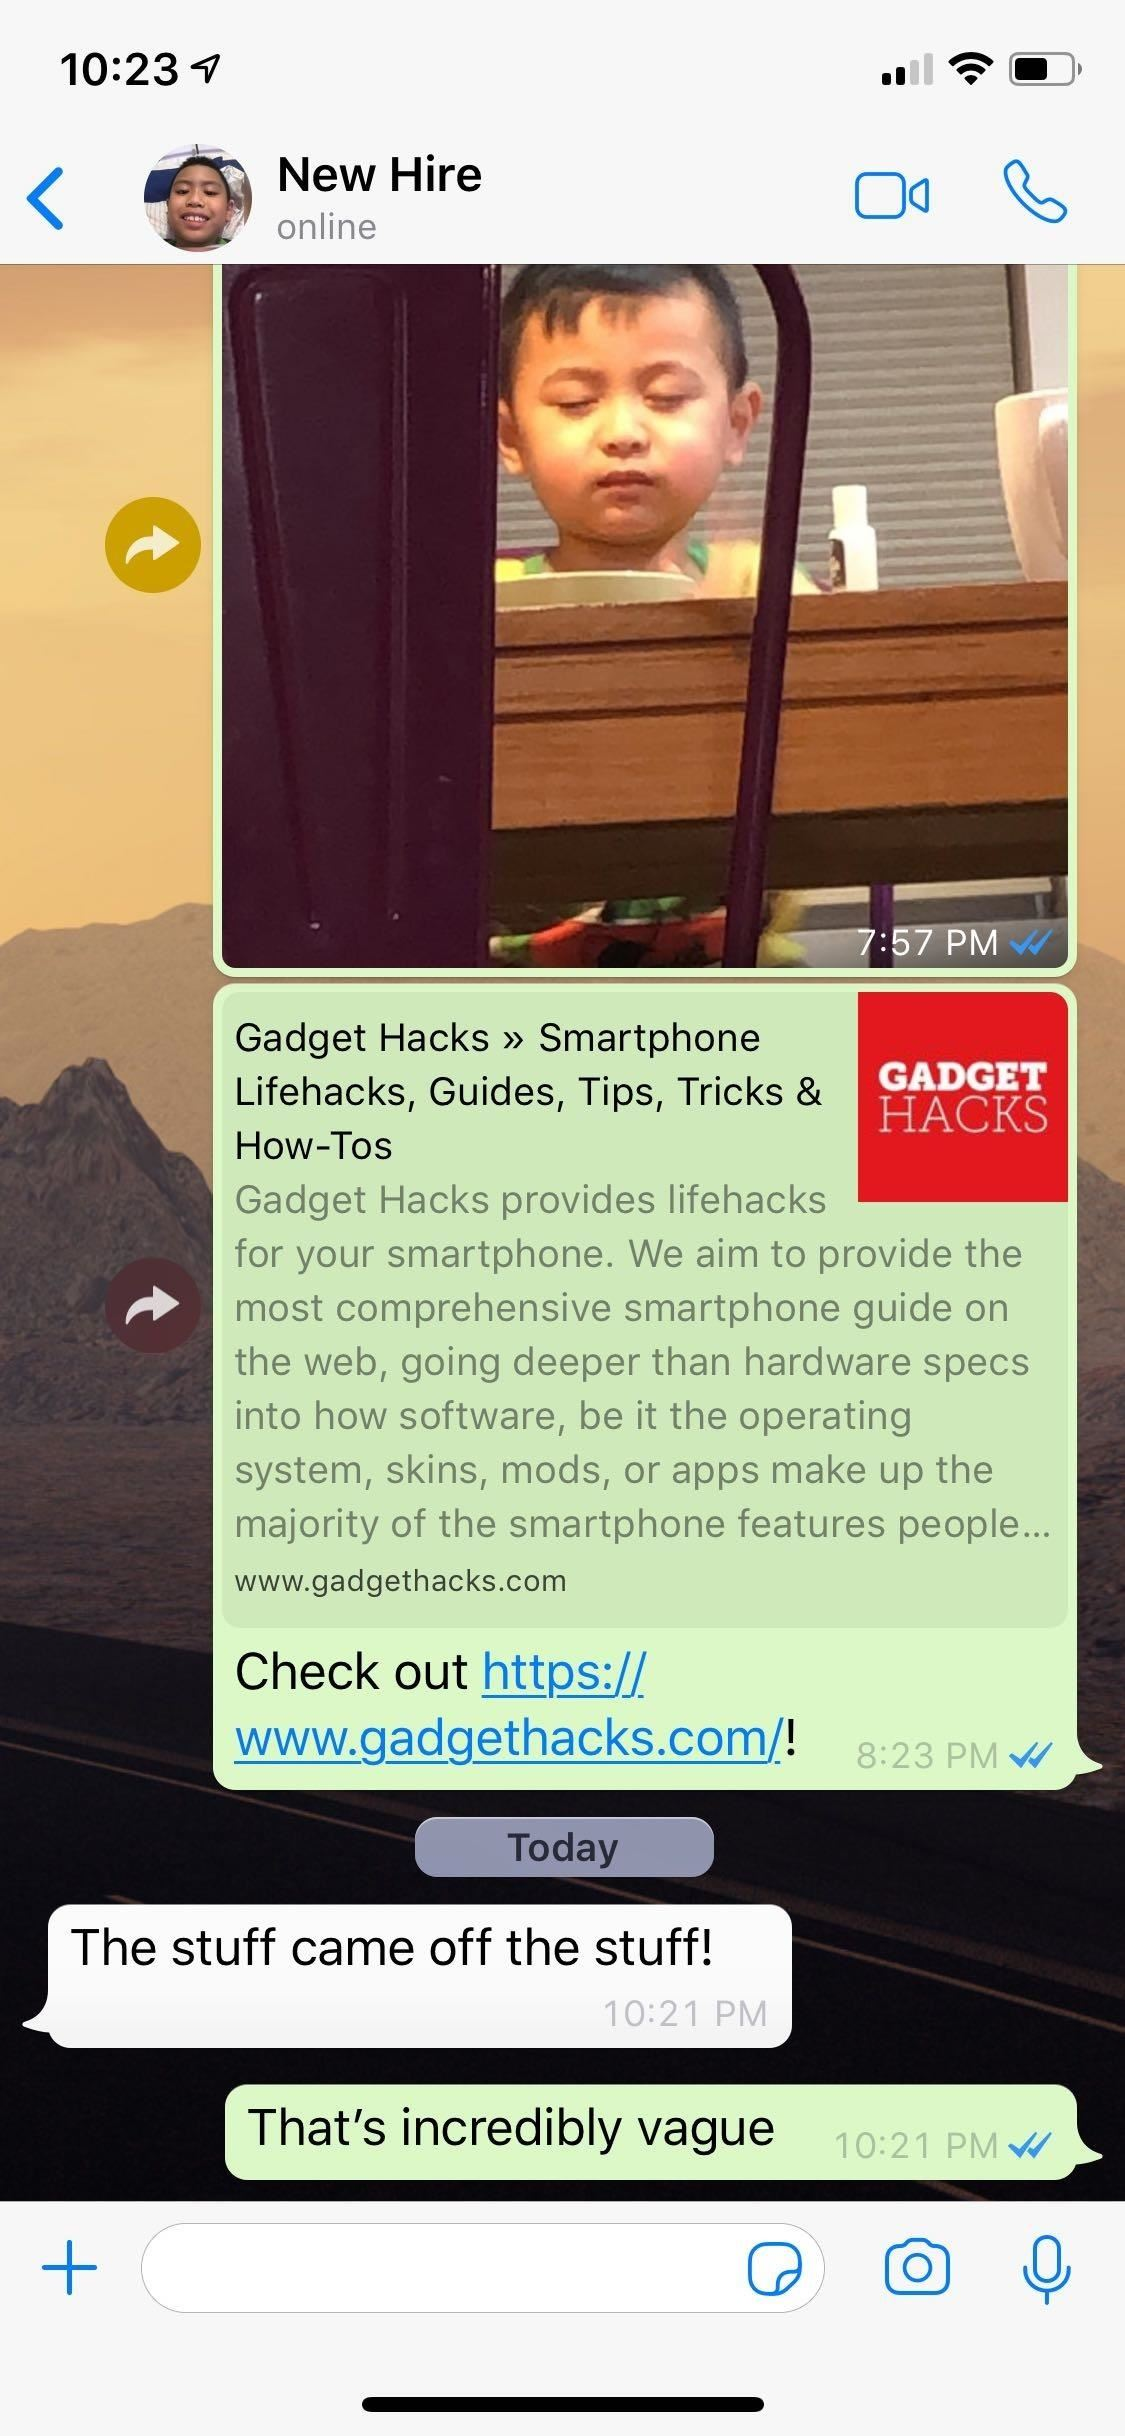 How to Add Time & Location Stickers to Media Files on WhatsApp for More Context